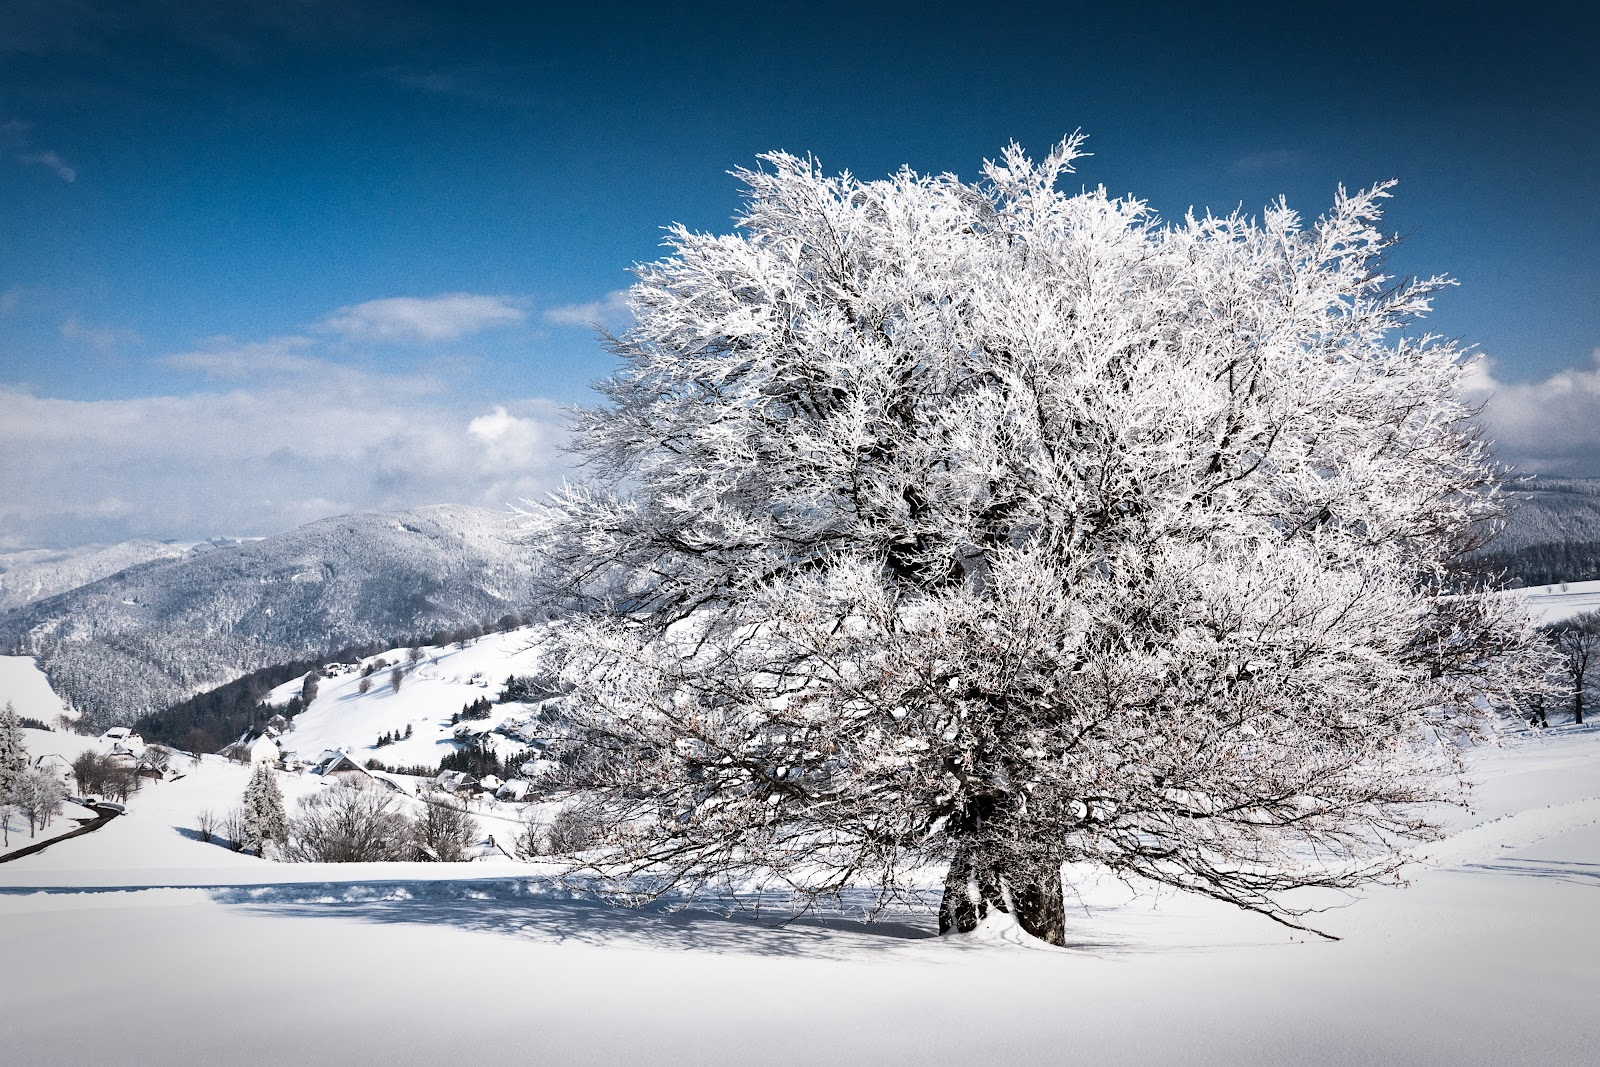 winter nature best wallpapers ever - photo #7